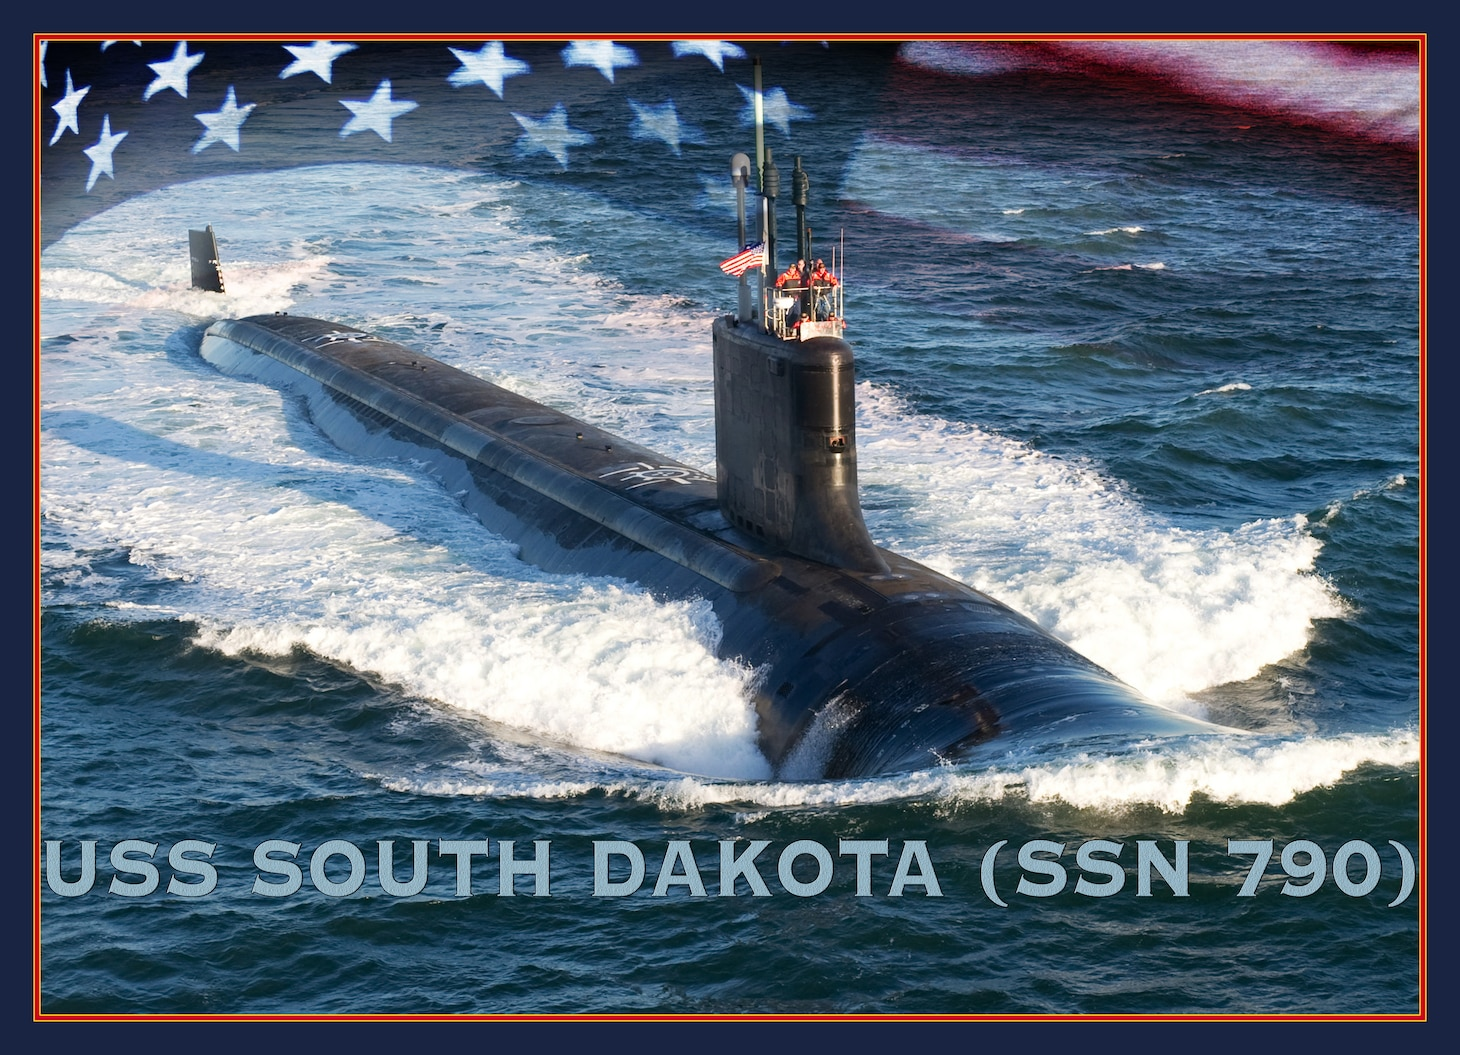 An artist rendering of the Virginia-class submarine USS South Dakota.